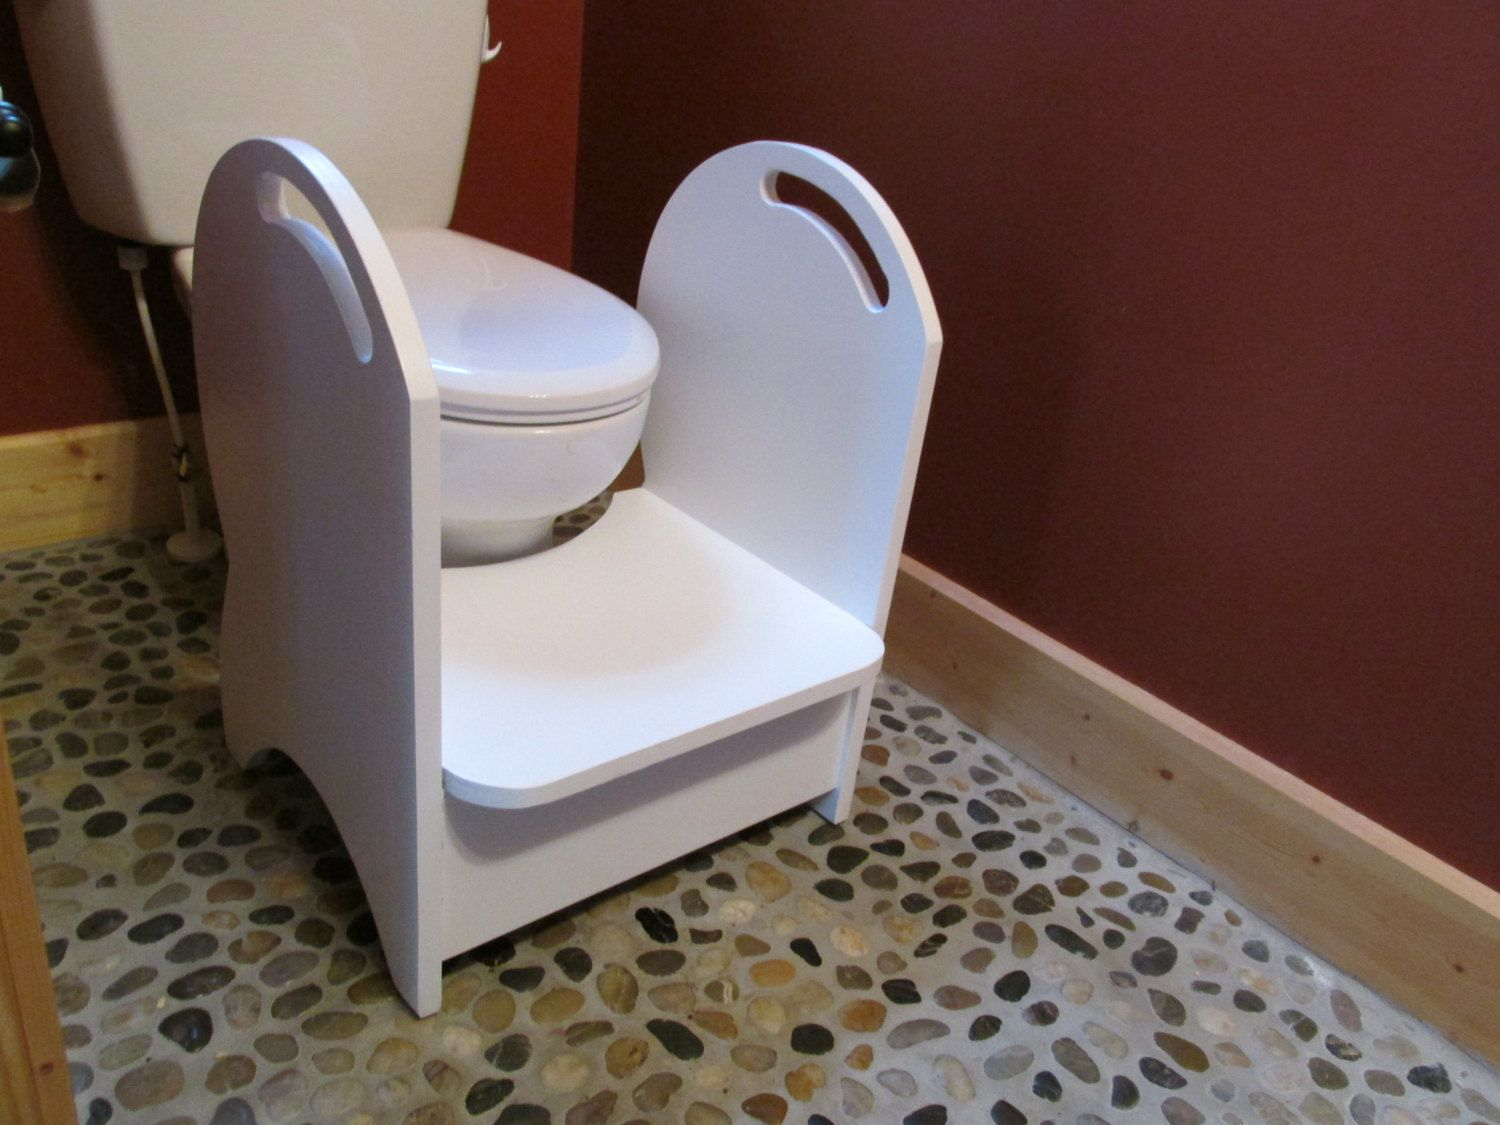 Deluxe Wood Potty Step Stool (white) by Clemswshop on Etsy : potty chair step stool - islam-shia.org